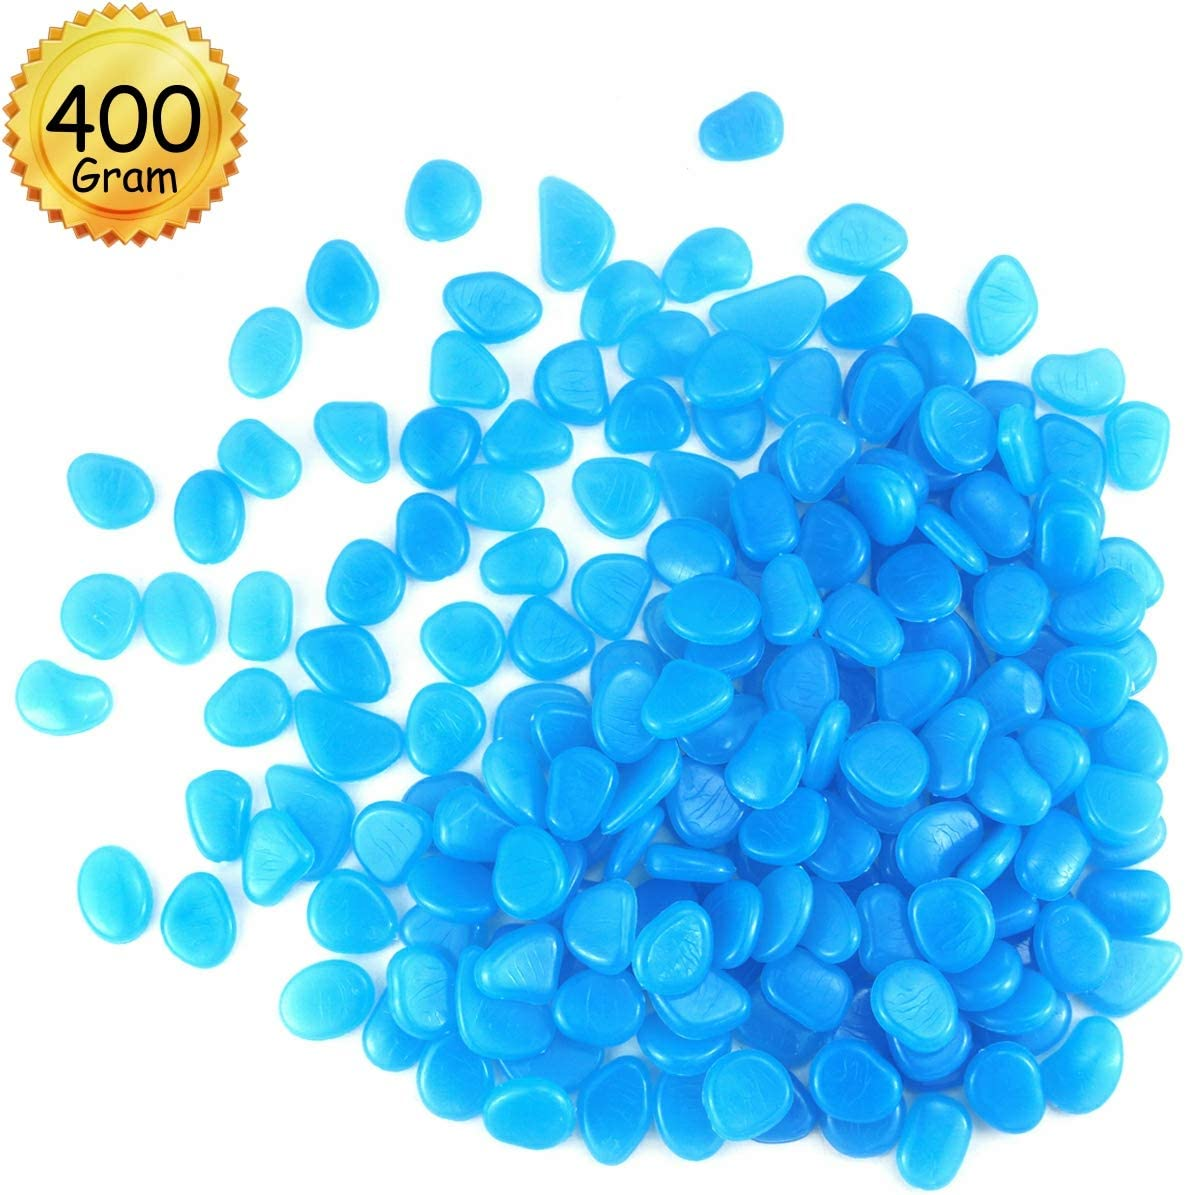 YG_Oline 200 Pcs Glow Blue(Glow in Dark) Fish Tank Rocks, Aquarium Decoration Kits, Blue Glowing Pebbles Stones for Garden Walkways, Plant Pots